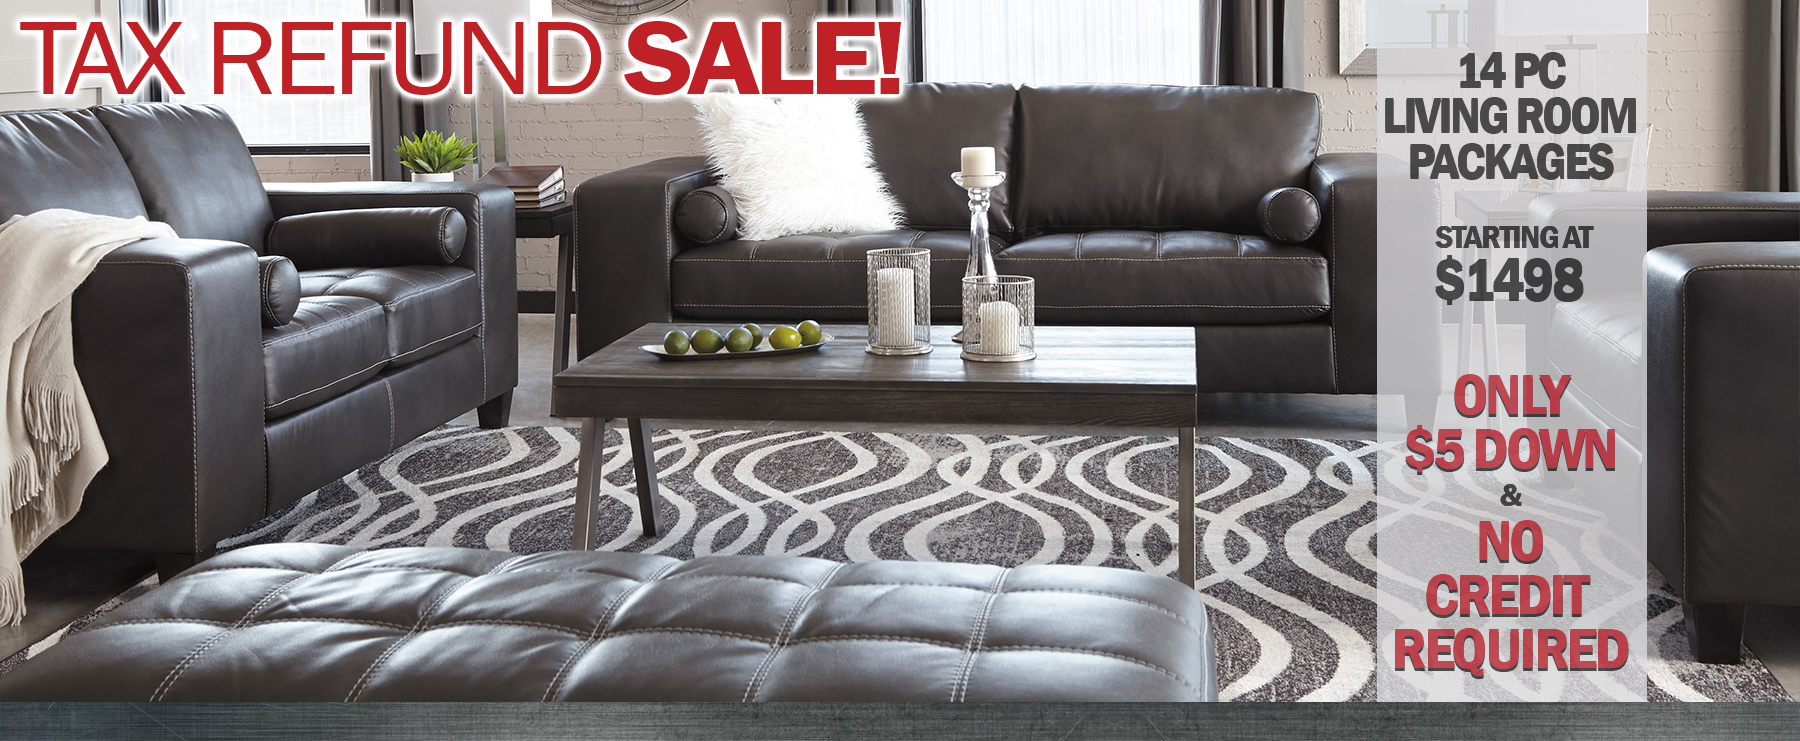 5th Avenue Furniture Detroit Fall Sale Living Room Packages